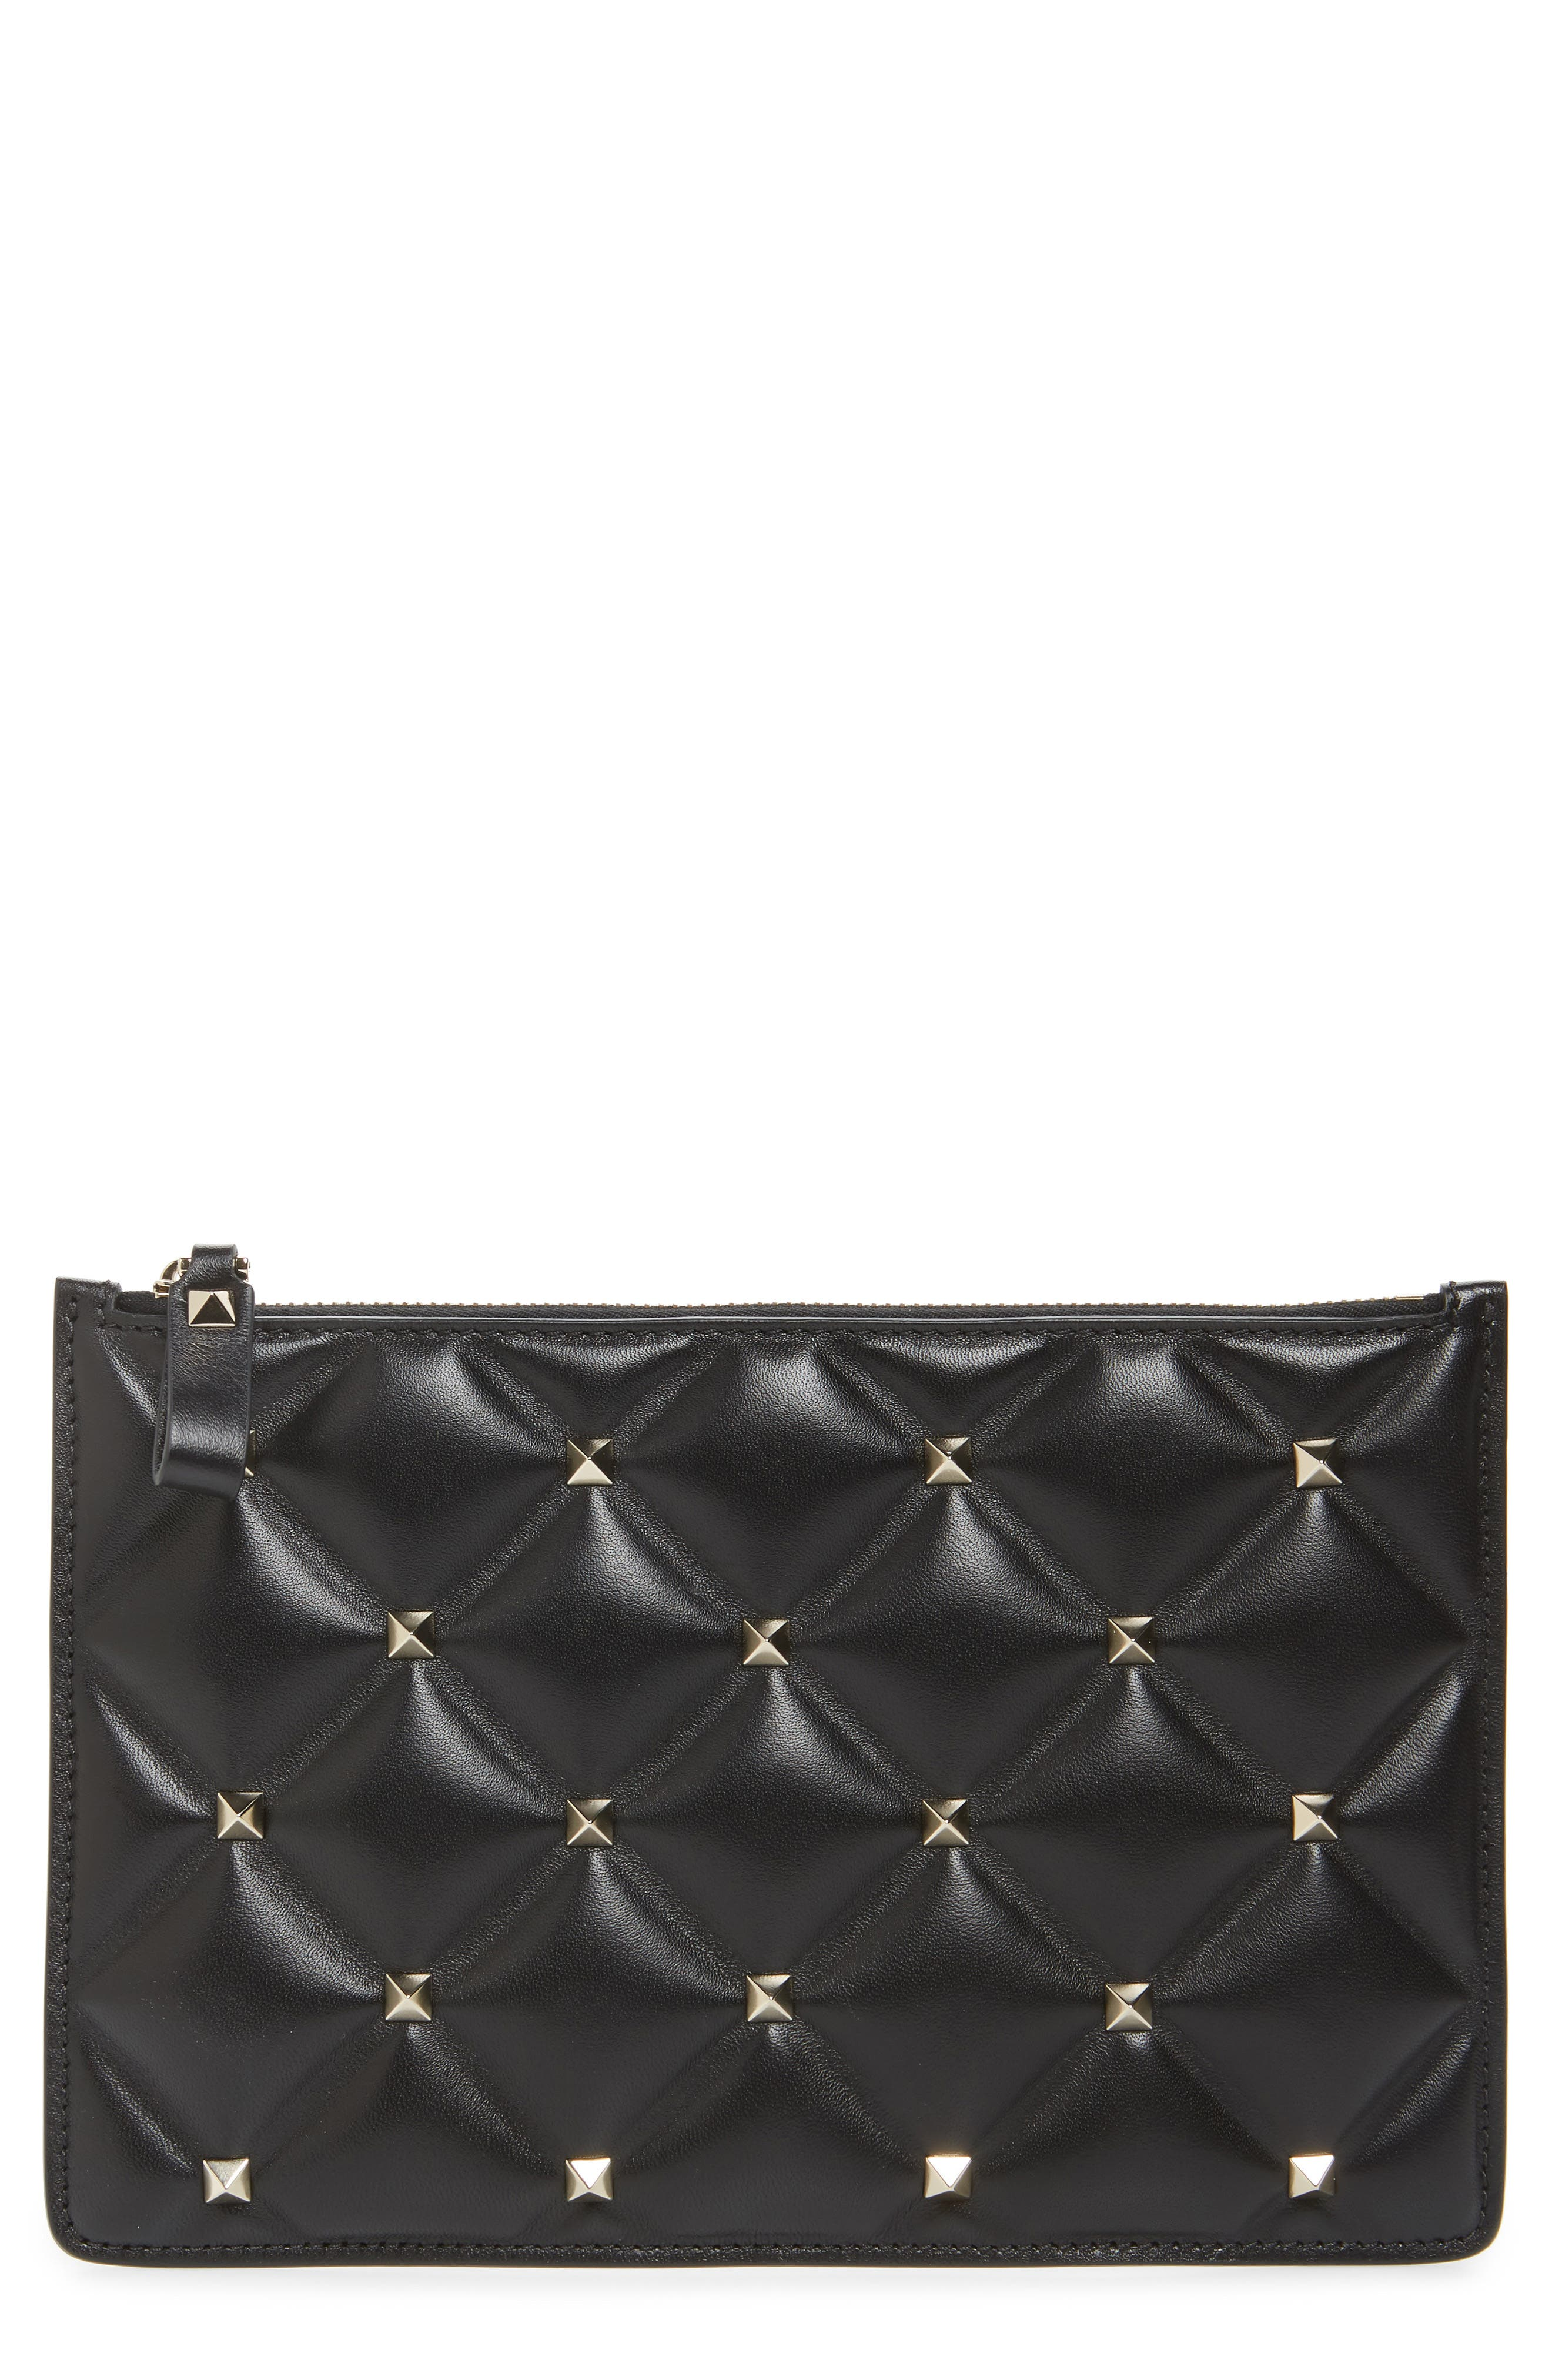 Medium Candystud Leather Pouch,                             Main thumbnail 1, color,                             NERO